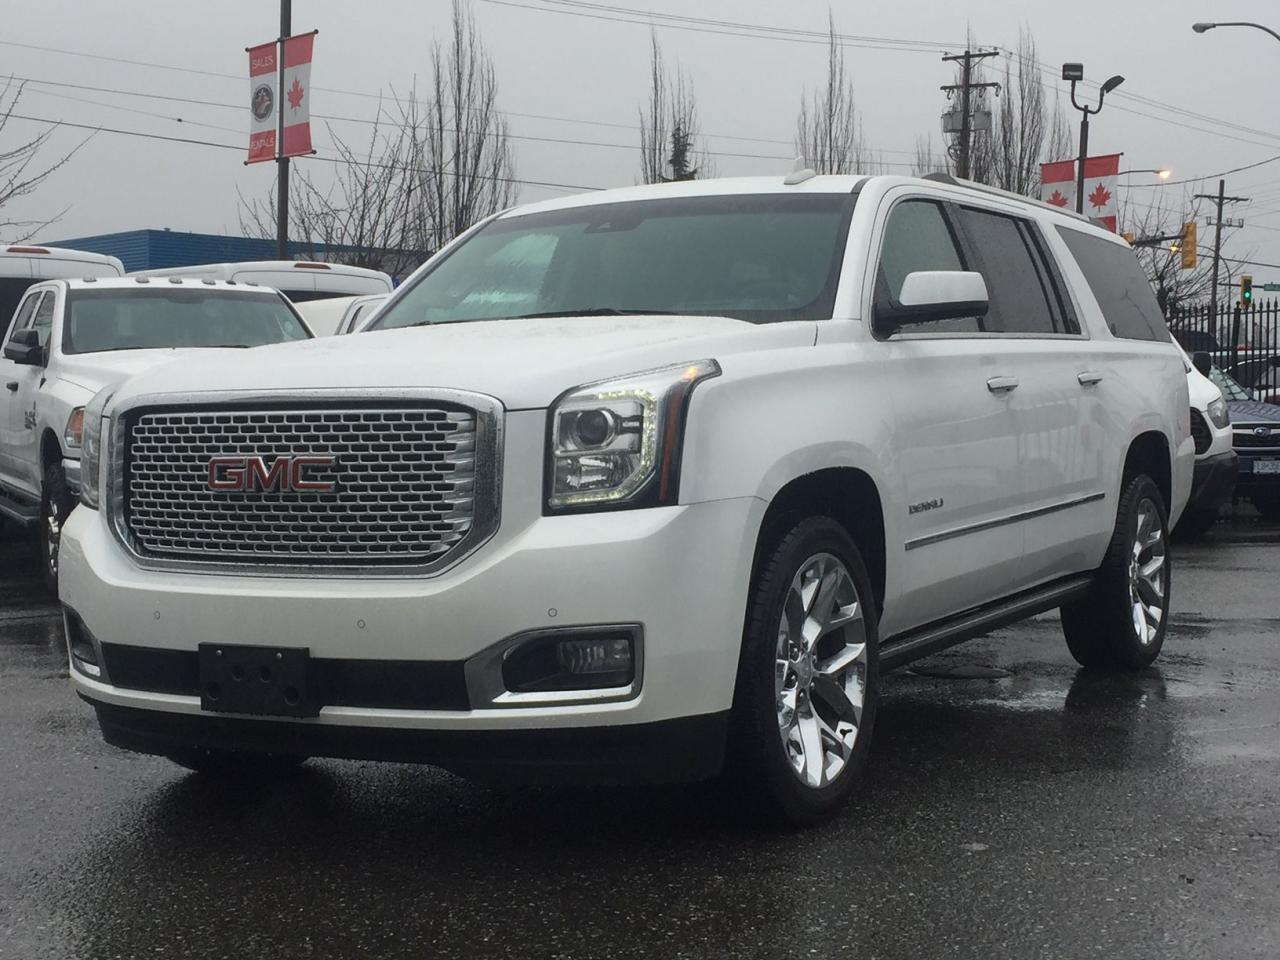 used 2017 gmc yukon denali xl denali for sale in langley british columbia. Black Bedroom Furniture Sets. Home Design Ideas